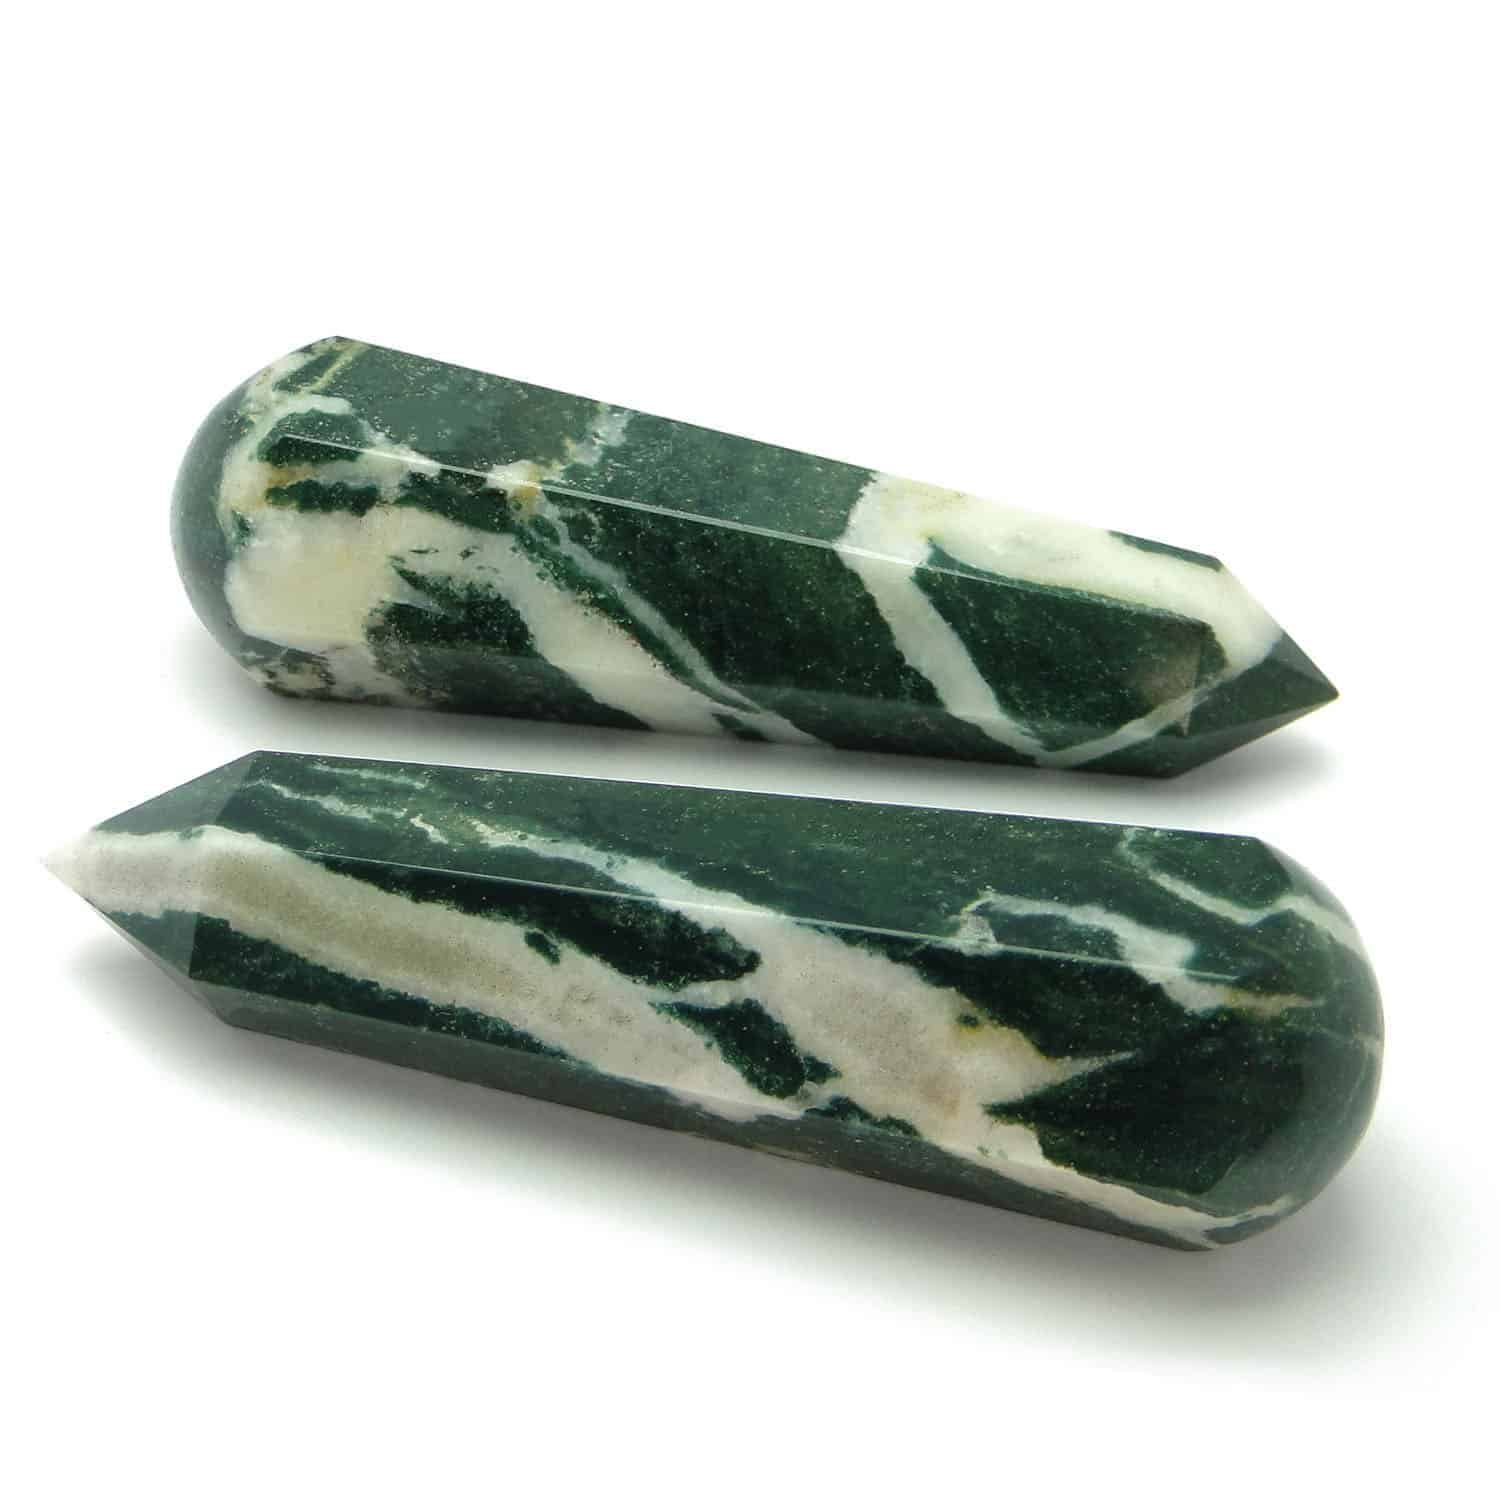 Green Zebra Healing Wand Massage Stick Nature's Crest MS009 ₹ 599.00